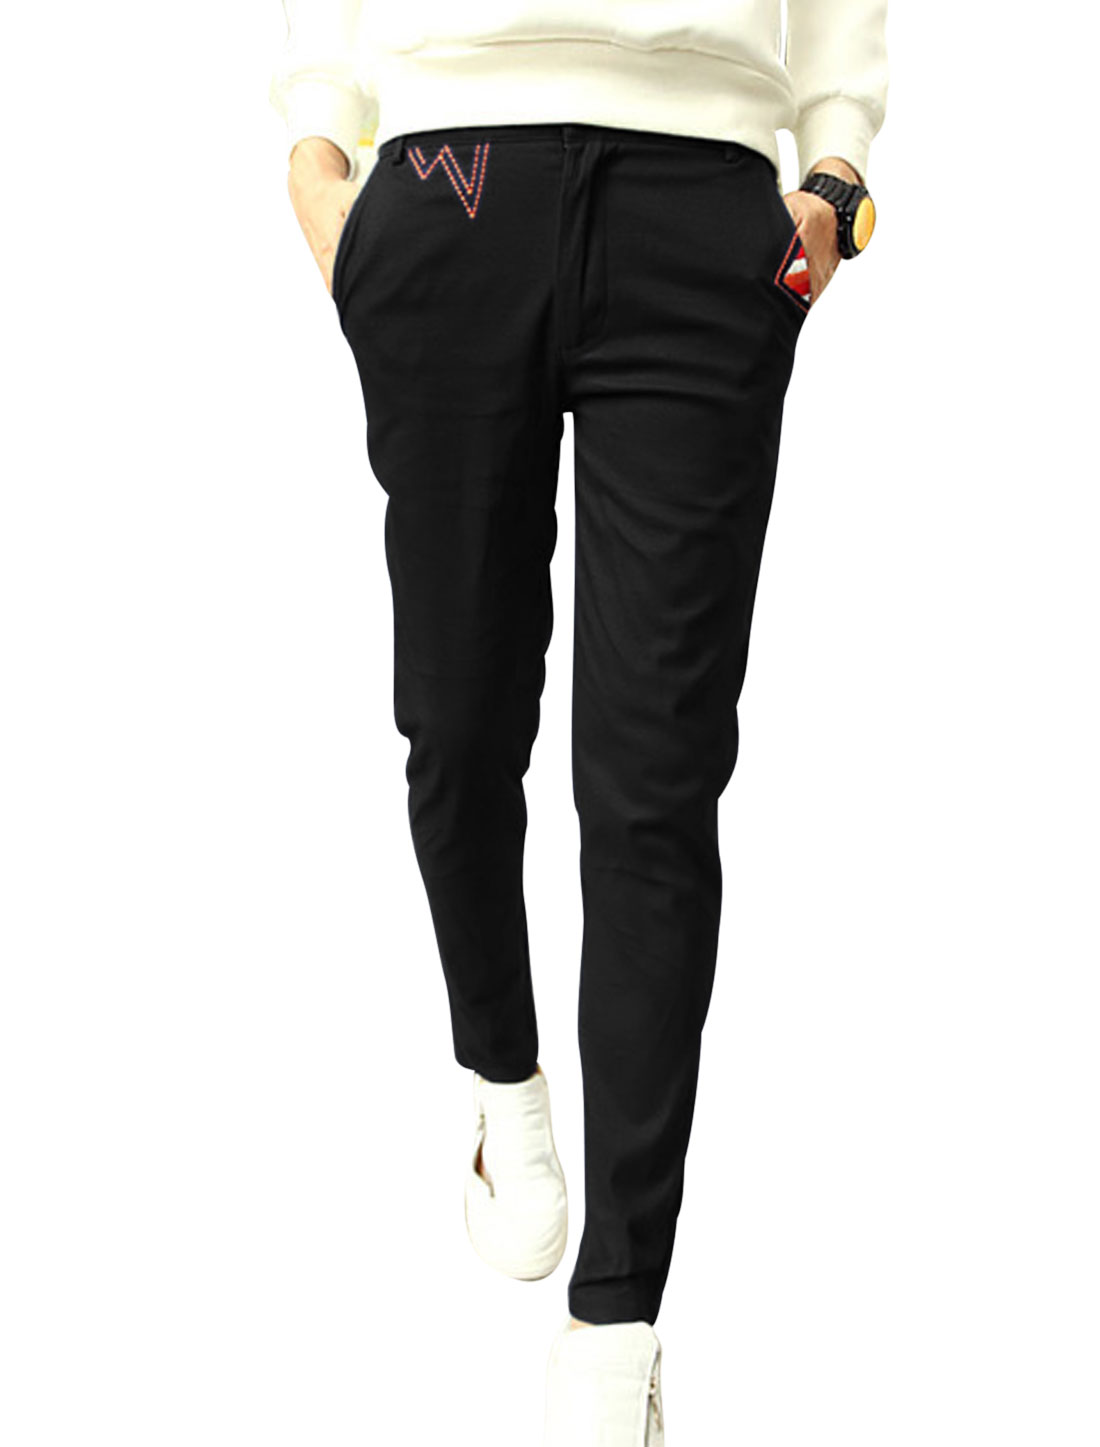 Men Zip Up Button Closed Embroidery Detail Casual Pants Black W30